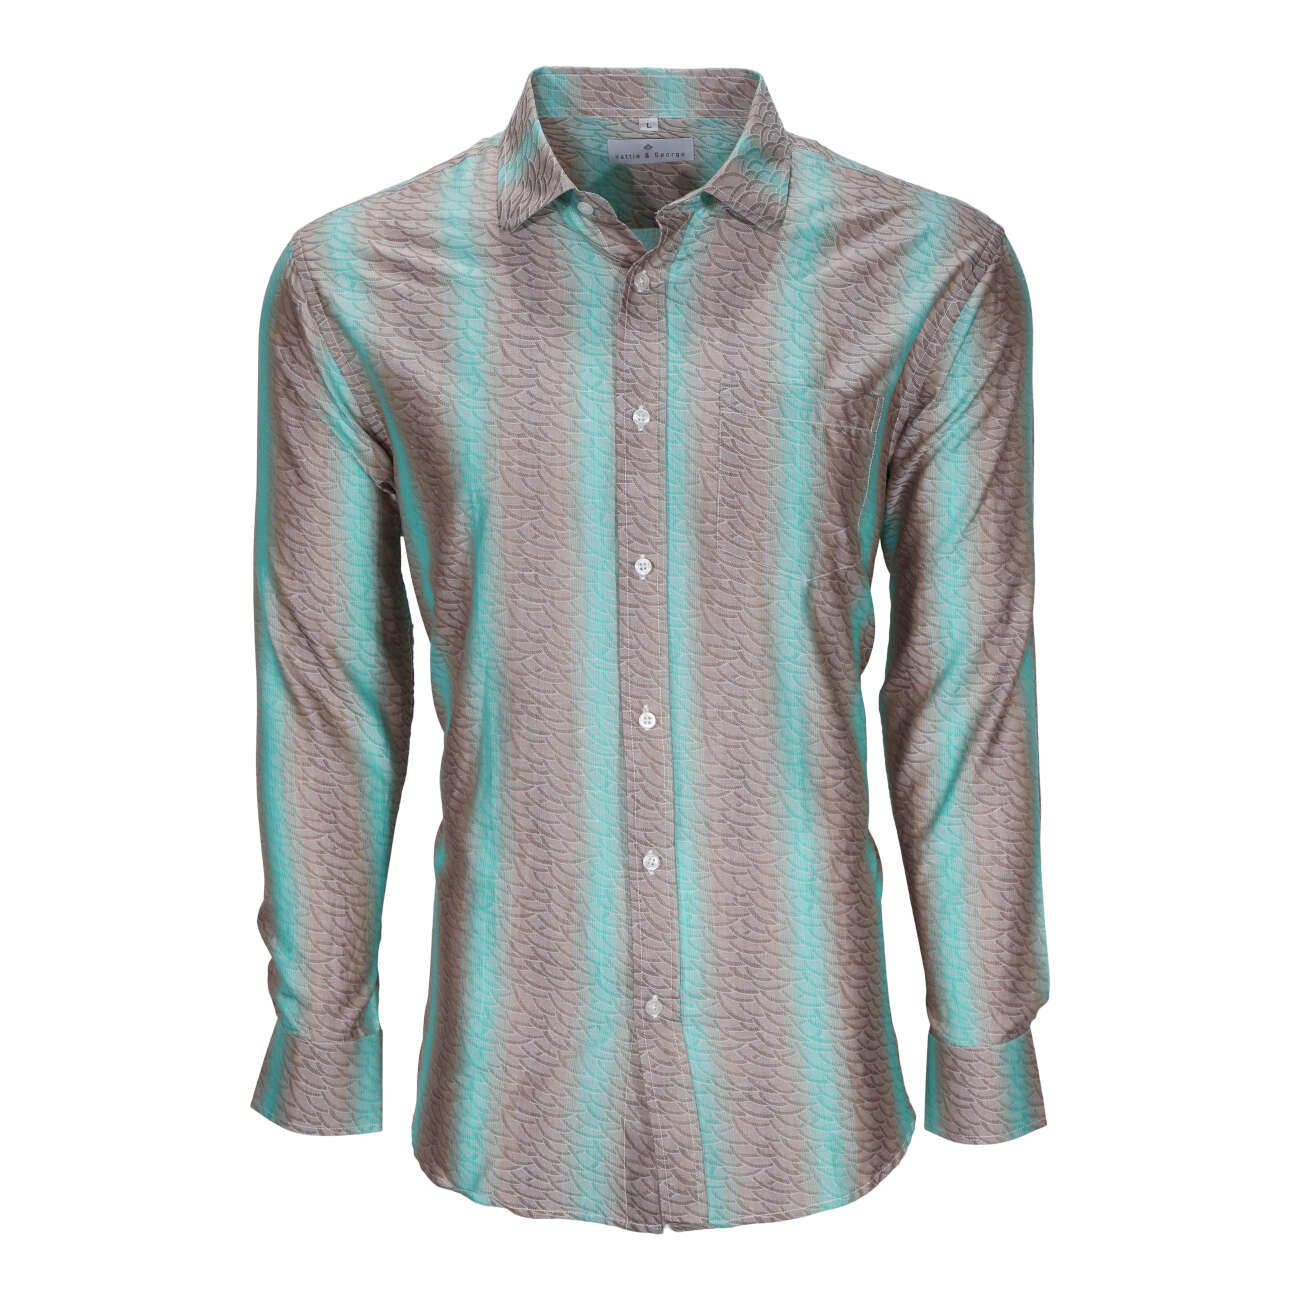 Mint men's long sleeve dress shirt.